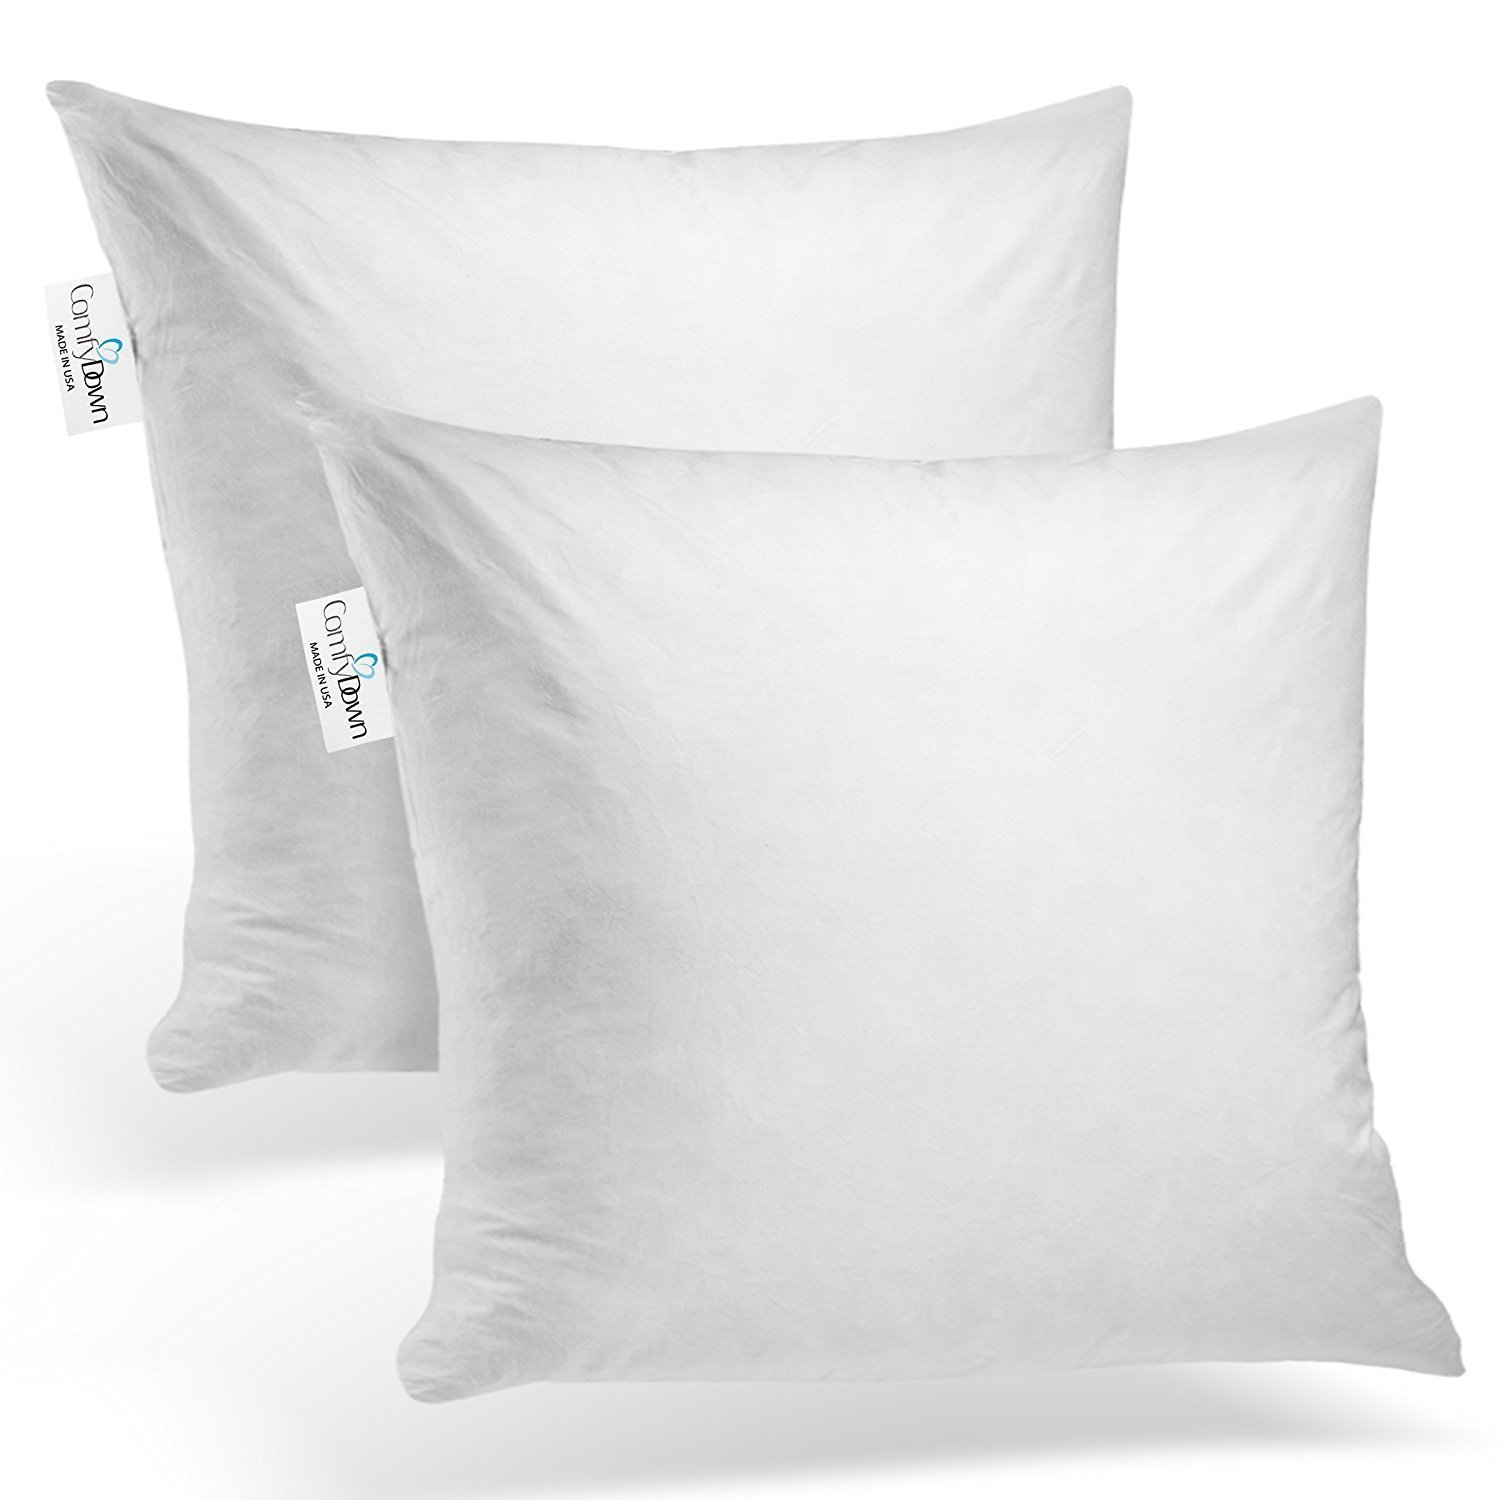 percent down standard home pillow amazon feather pillows kitchen dp cotton com lavish